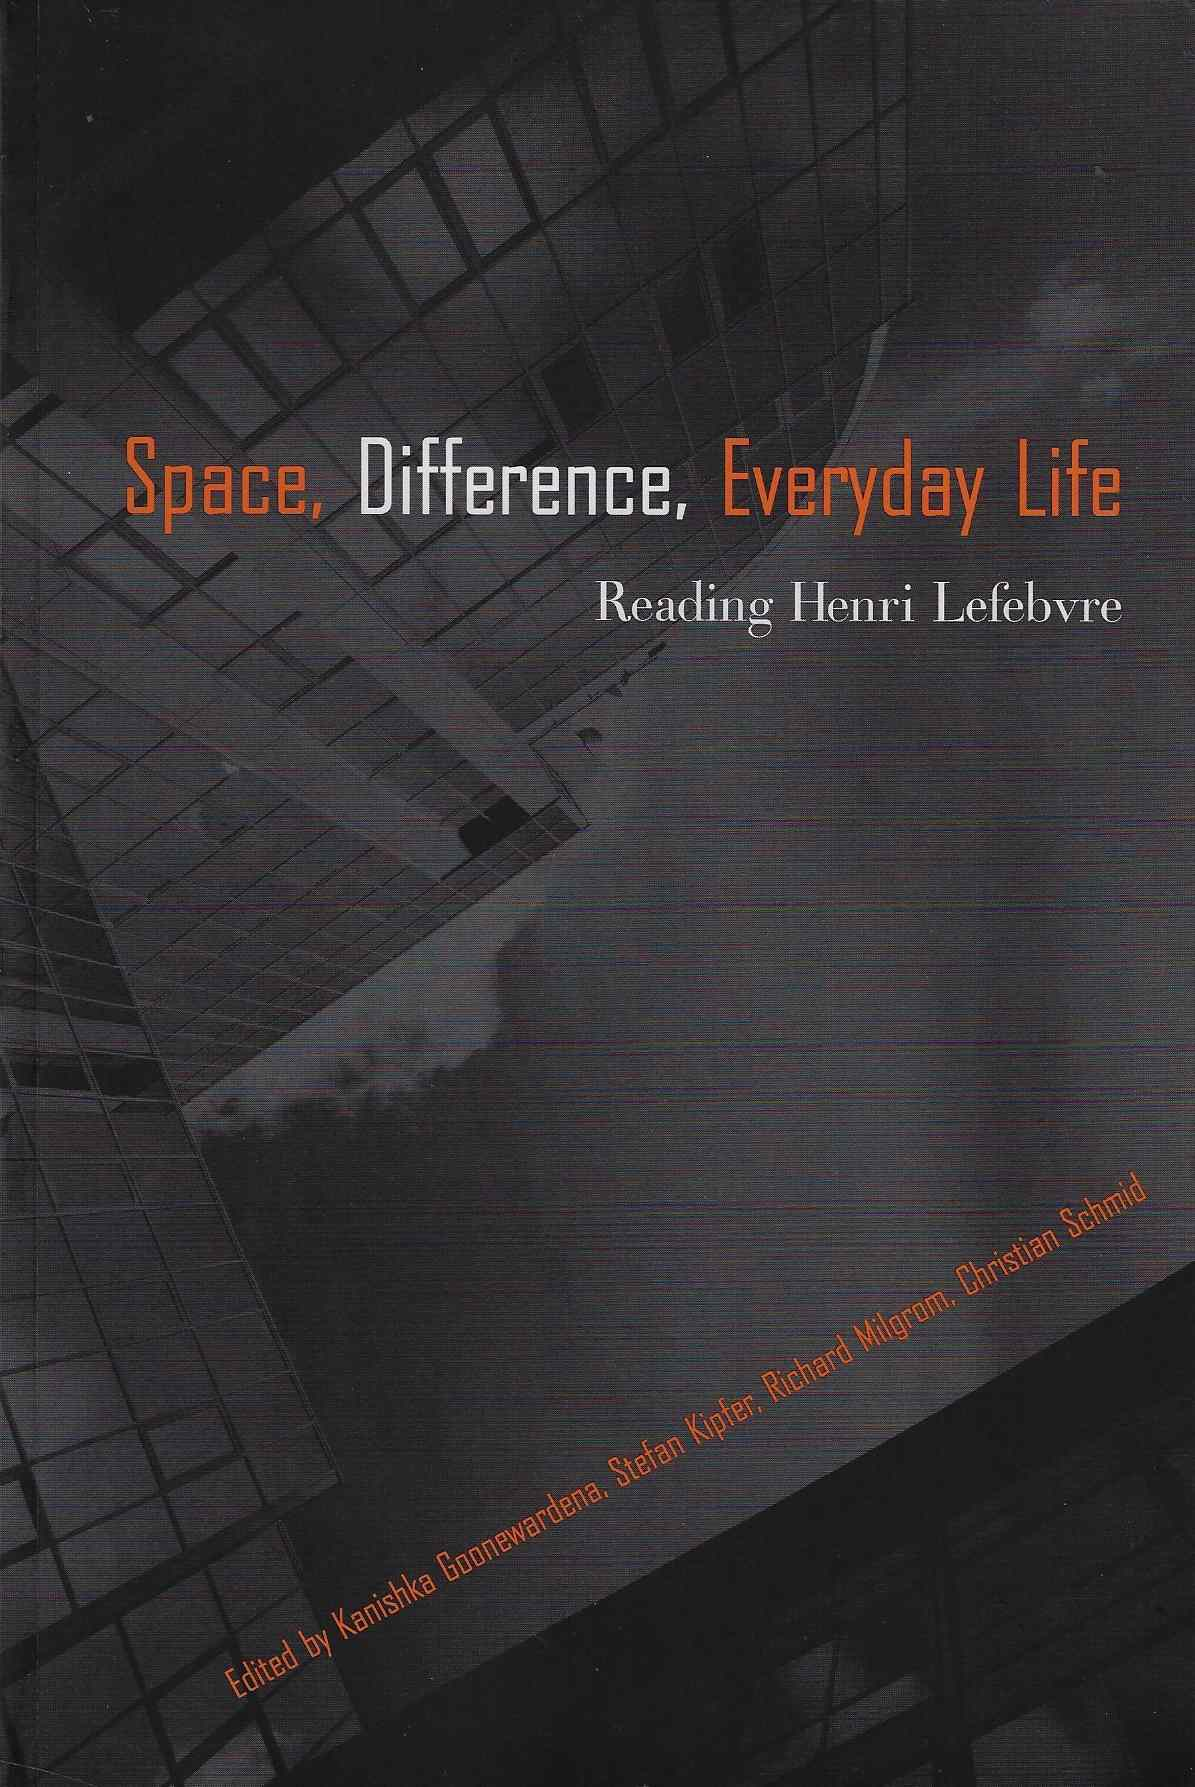 Image for Space, Difference, Everyday Life Reading Henri Lefebvre